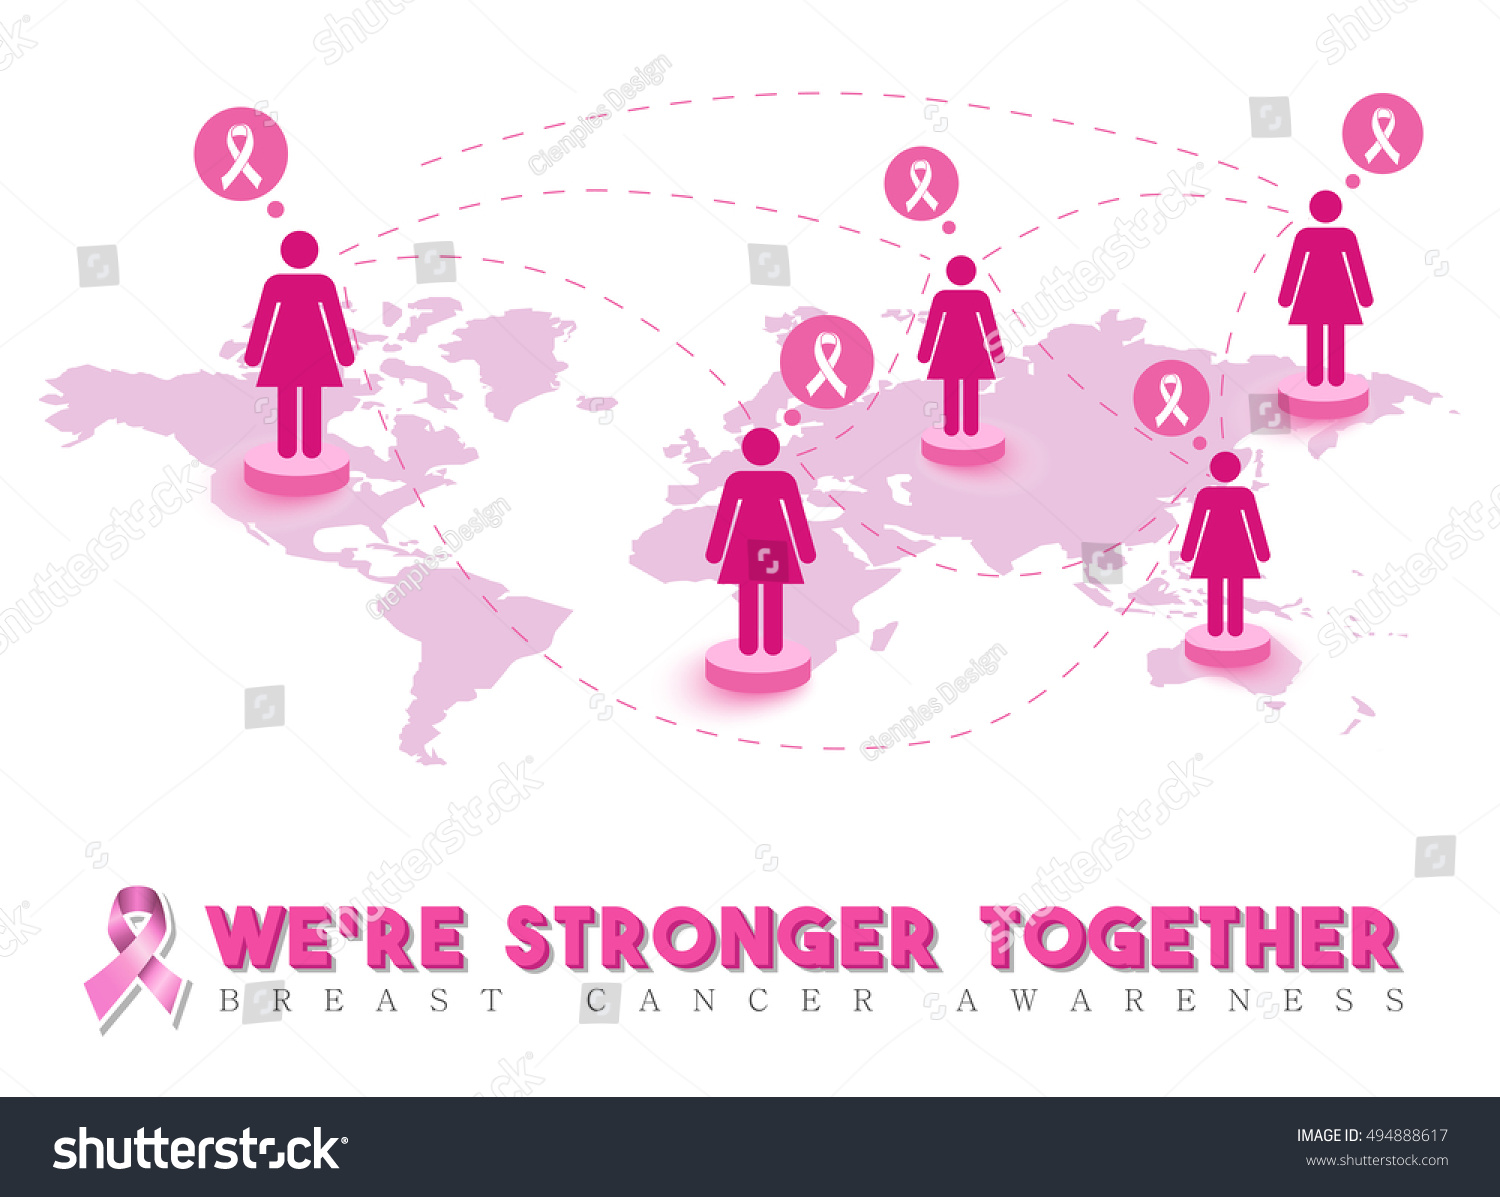 Breast cancer awareness design, pink women connected around the world for  global support and community